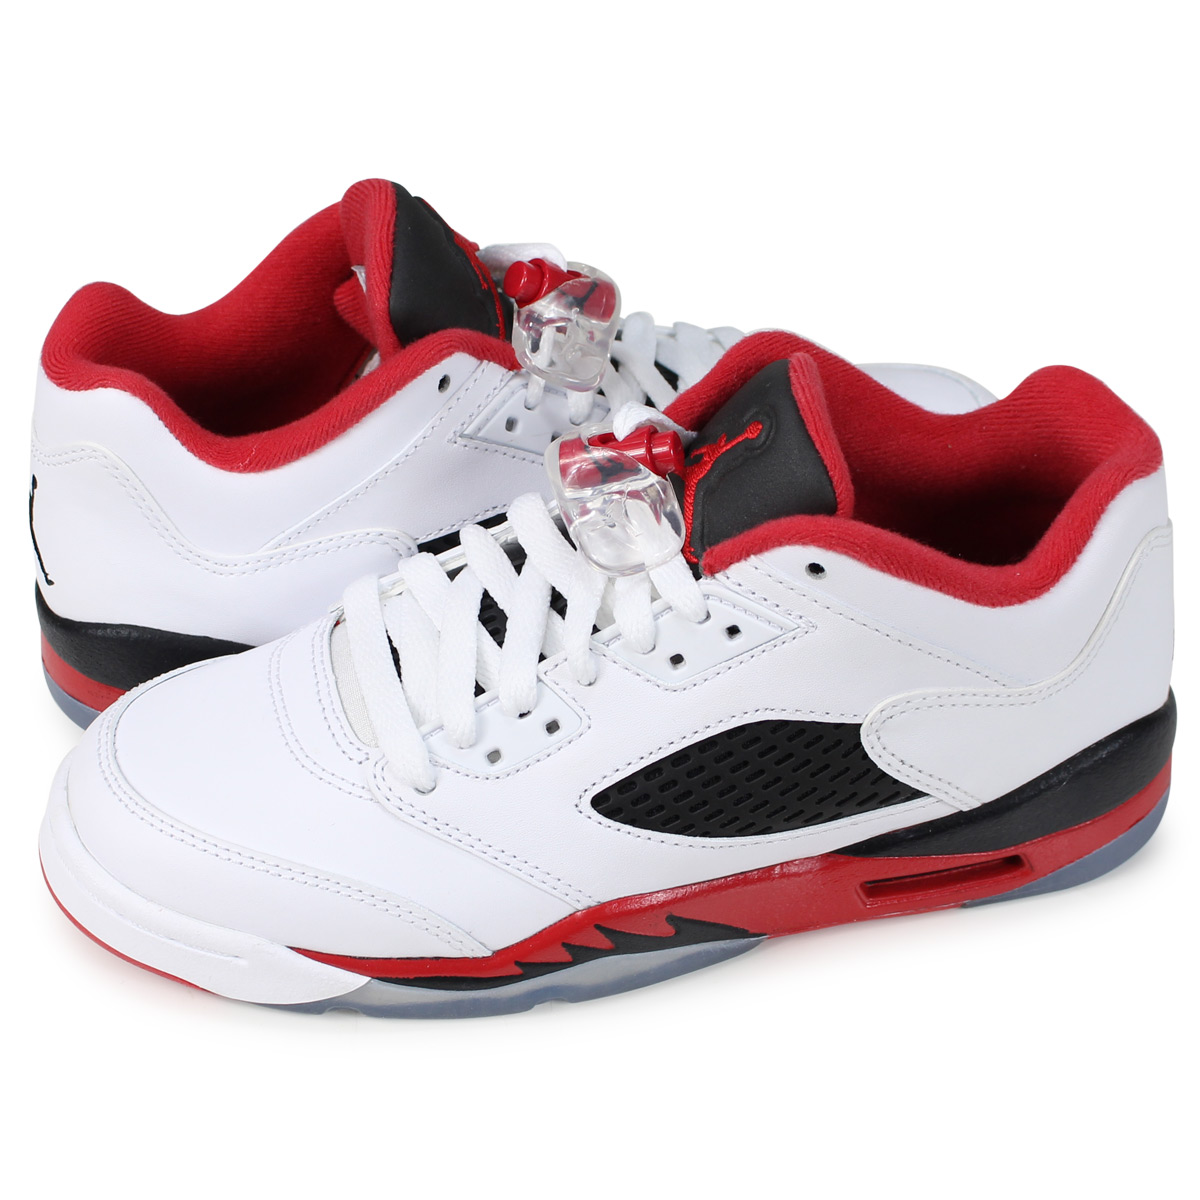 a209095aa37313 Whats up Sports  Nike NIKE Air Jordan 5 nostalgic lady s sneakers ...